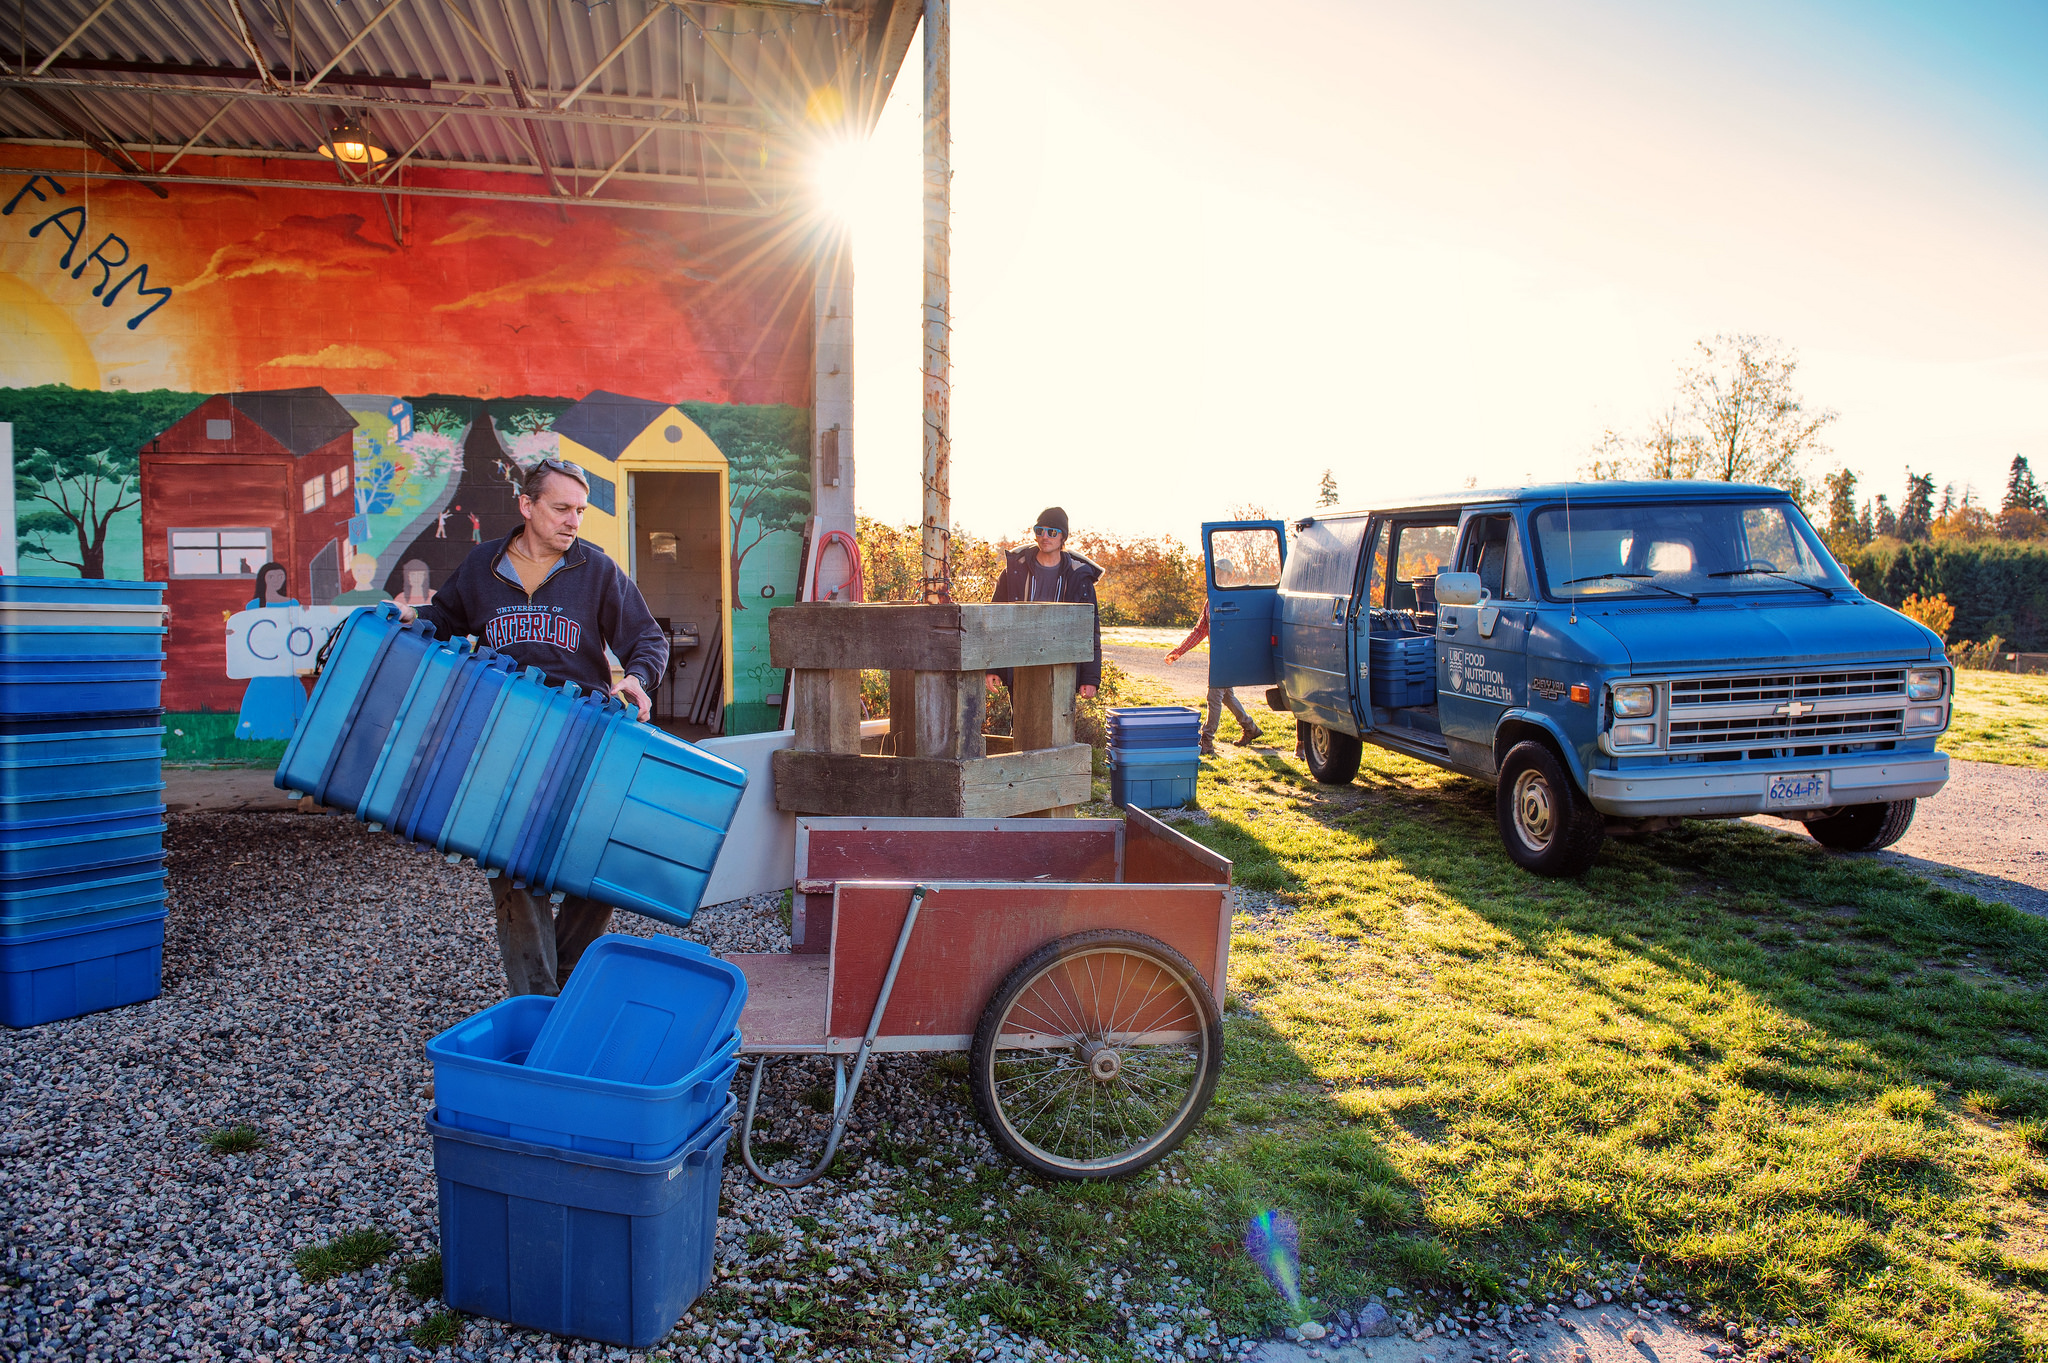 loading crates into a van at the farm